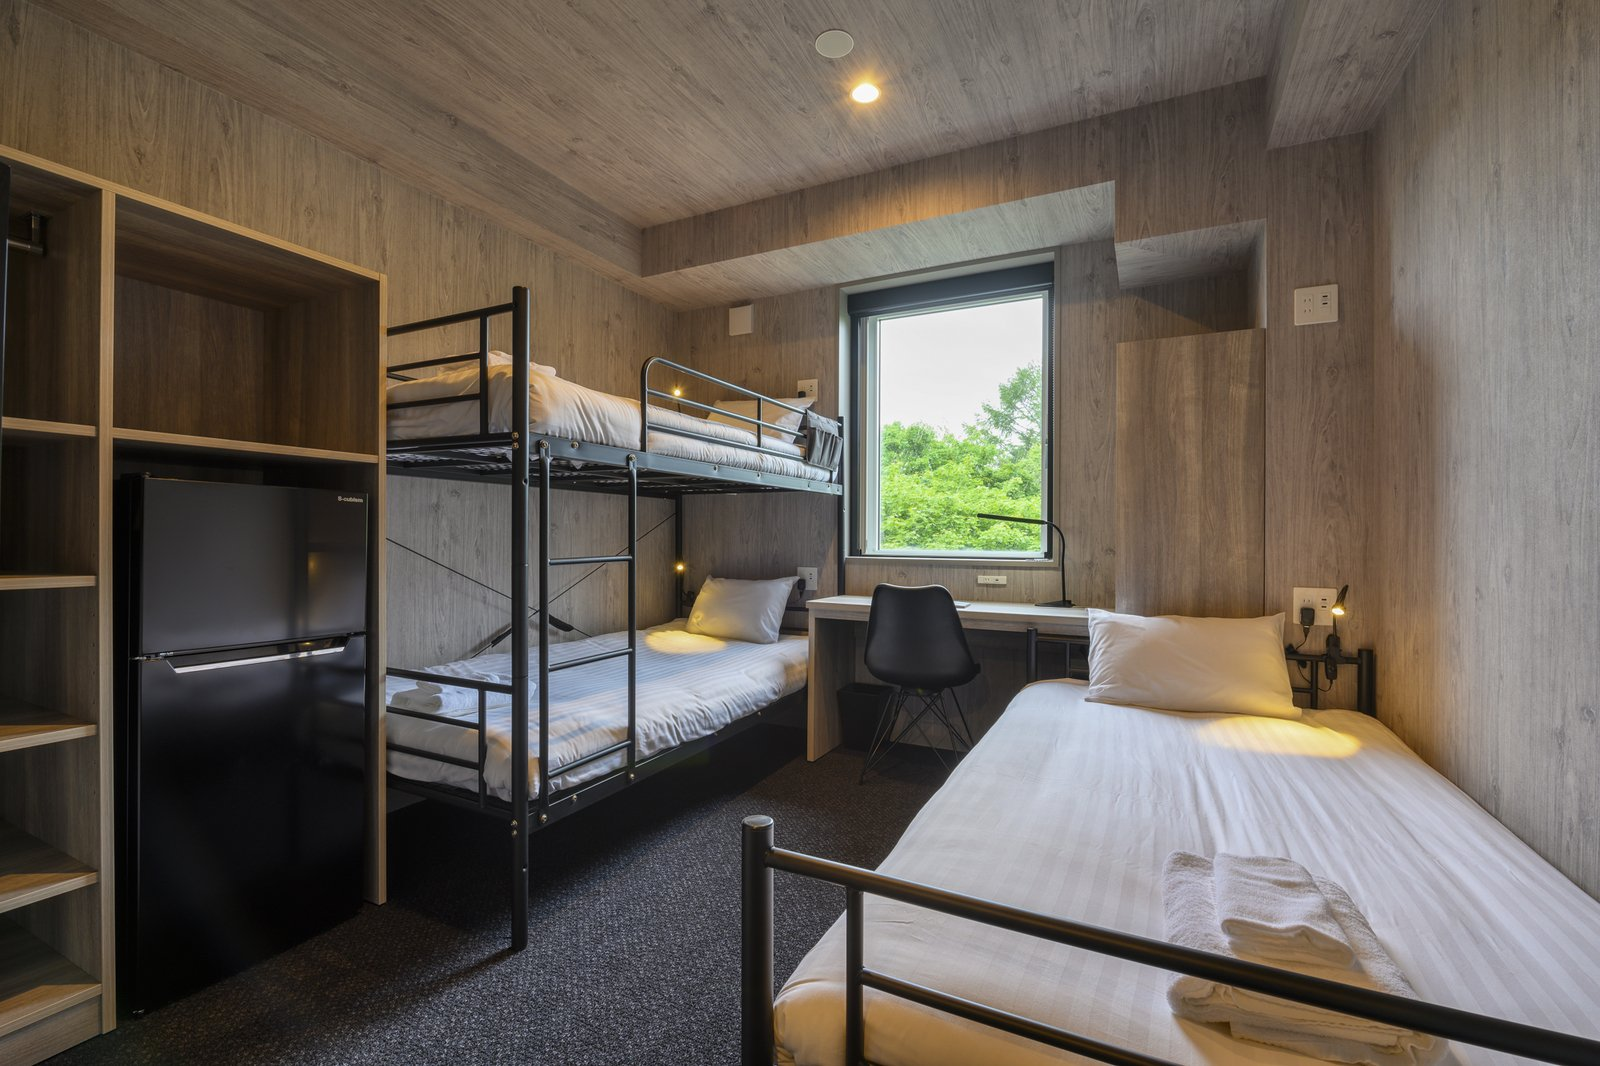 Inside the triple room of Midtown Niseko